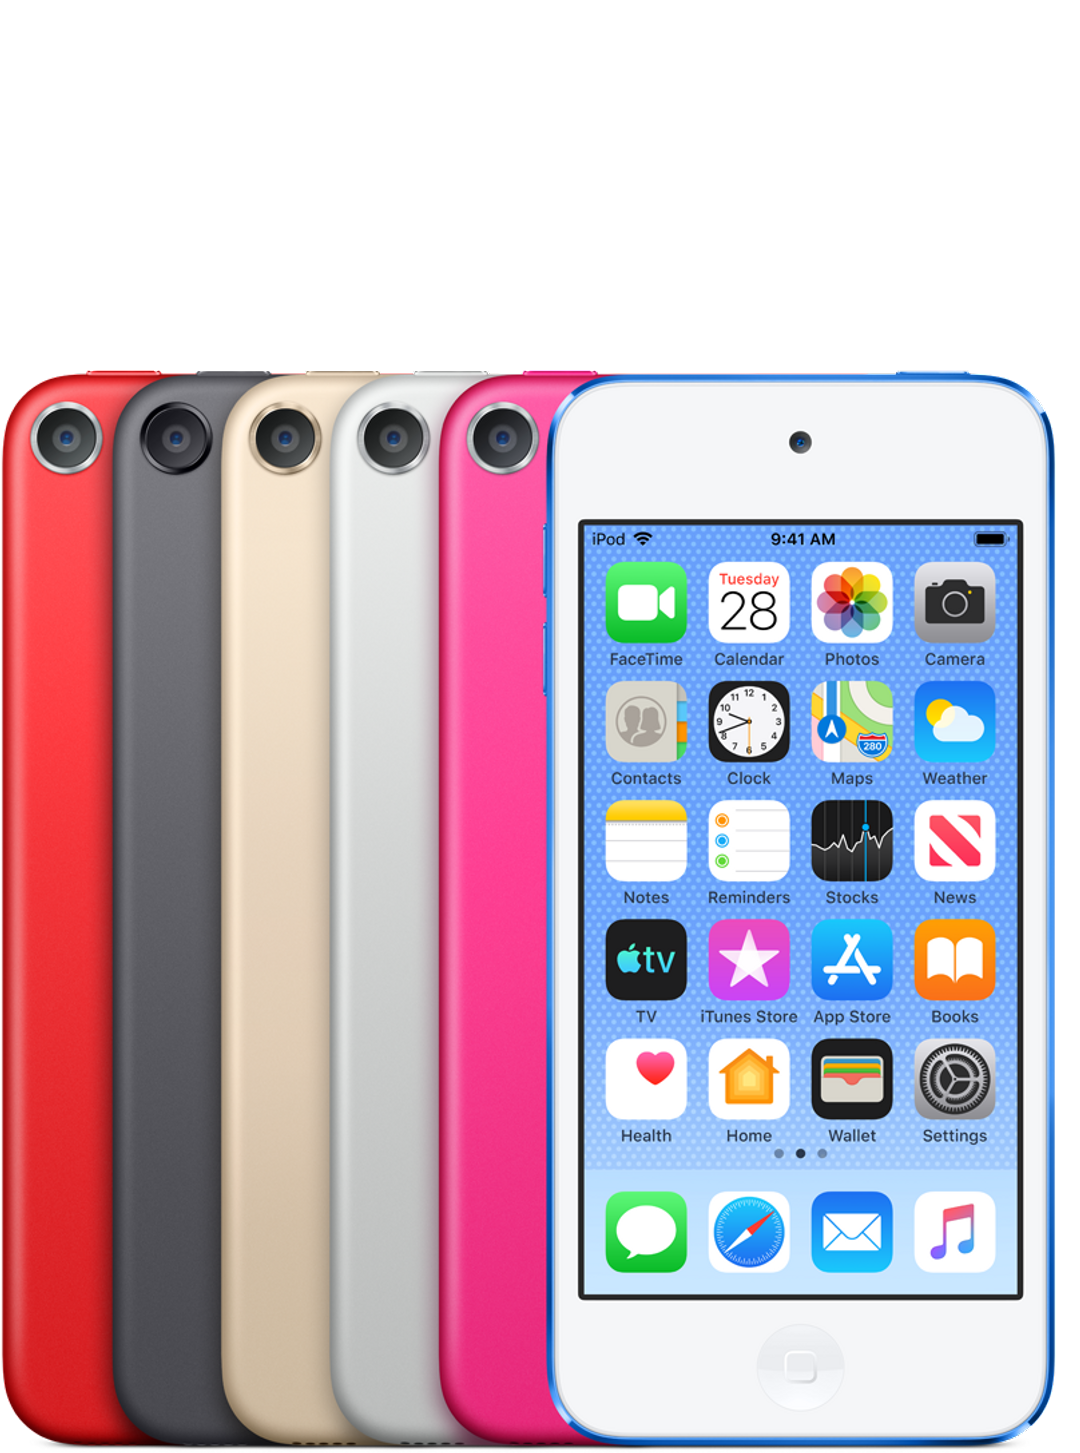 Apple's new iPod Touch updated to include FaceTime, AR and more.